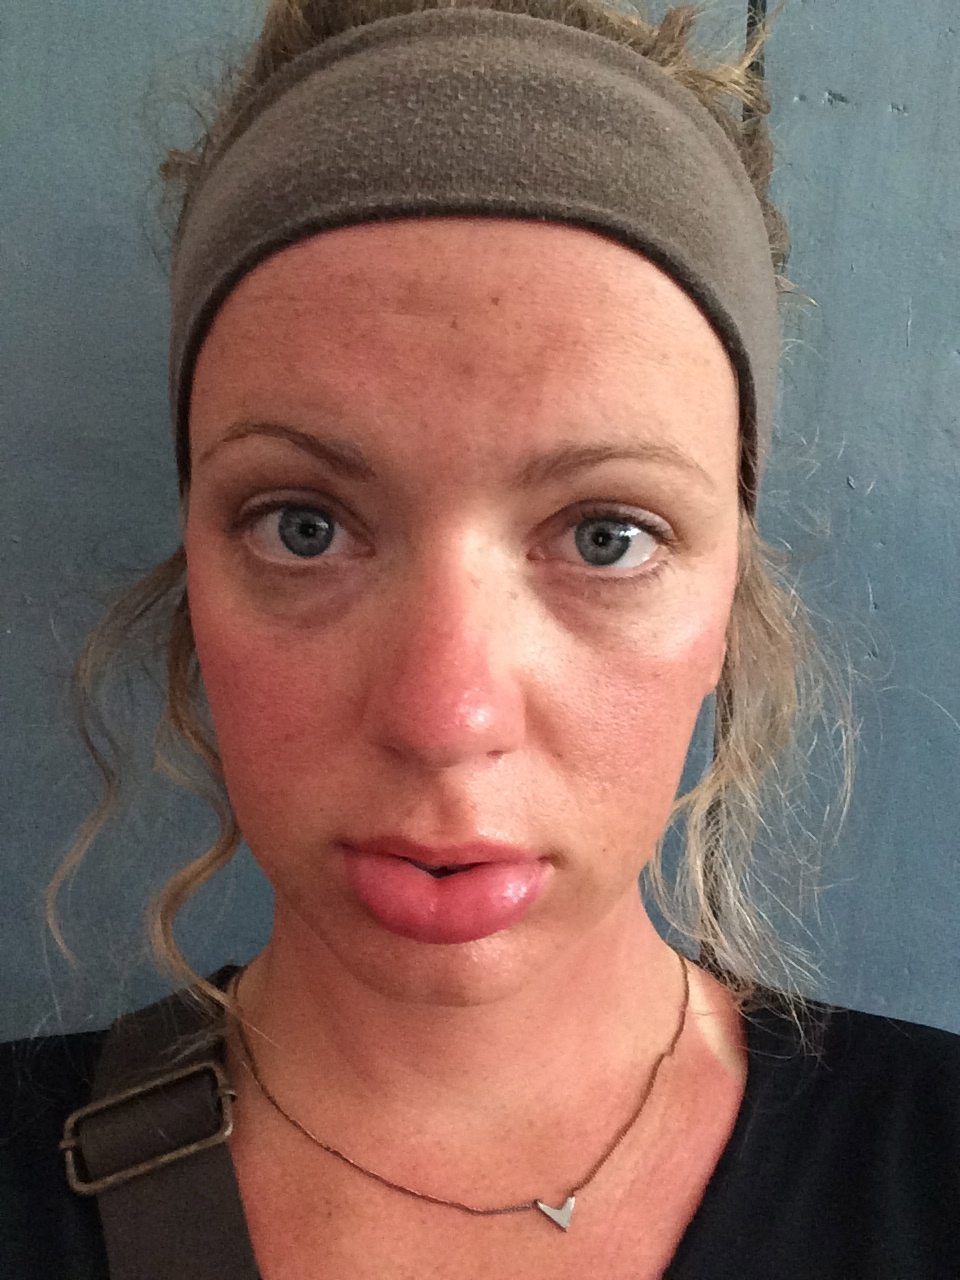 The only sunburn I've gotten in SE Asia...on my lips. Apparently I didn't put enough sunscreen on them and they swelled to twice their size. My celeb status just rose to B list.